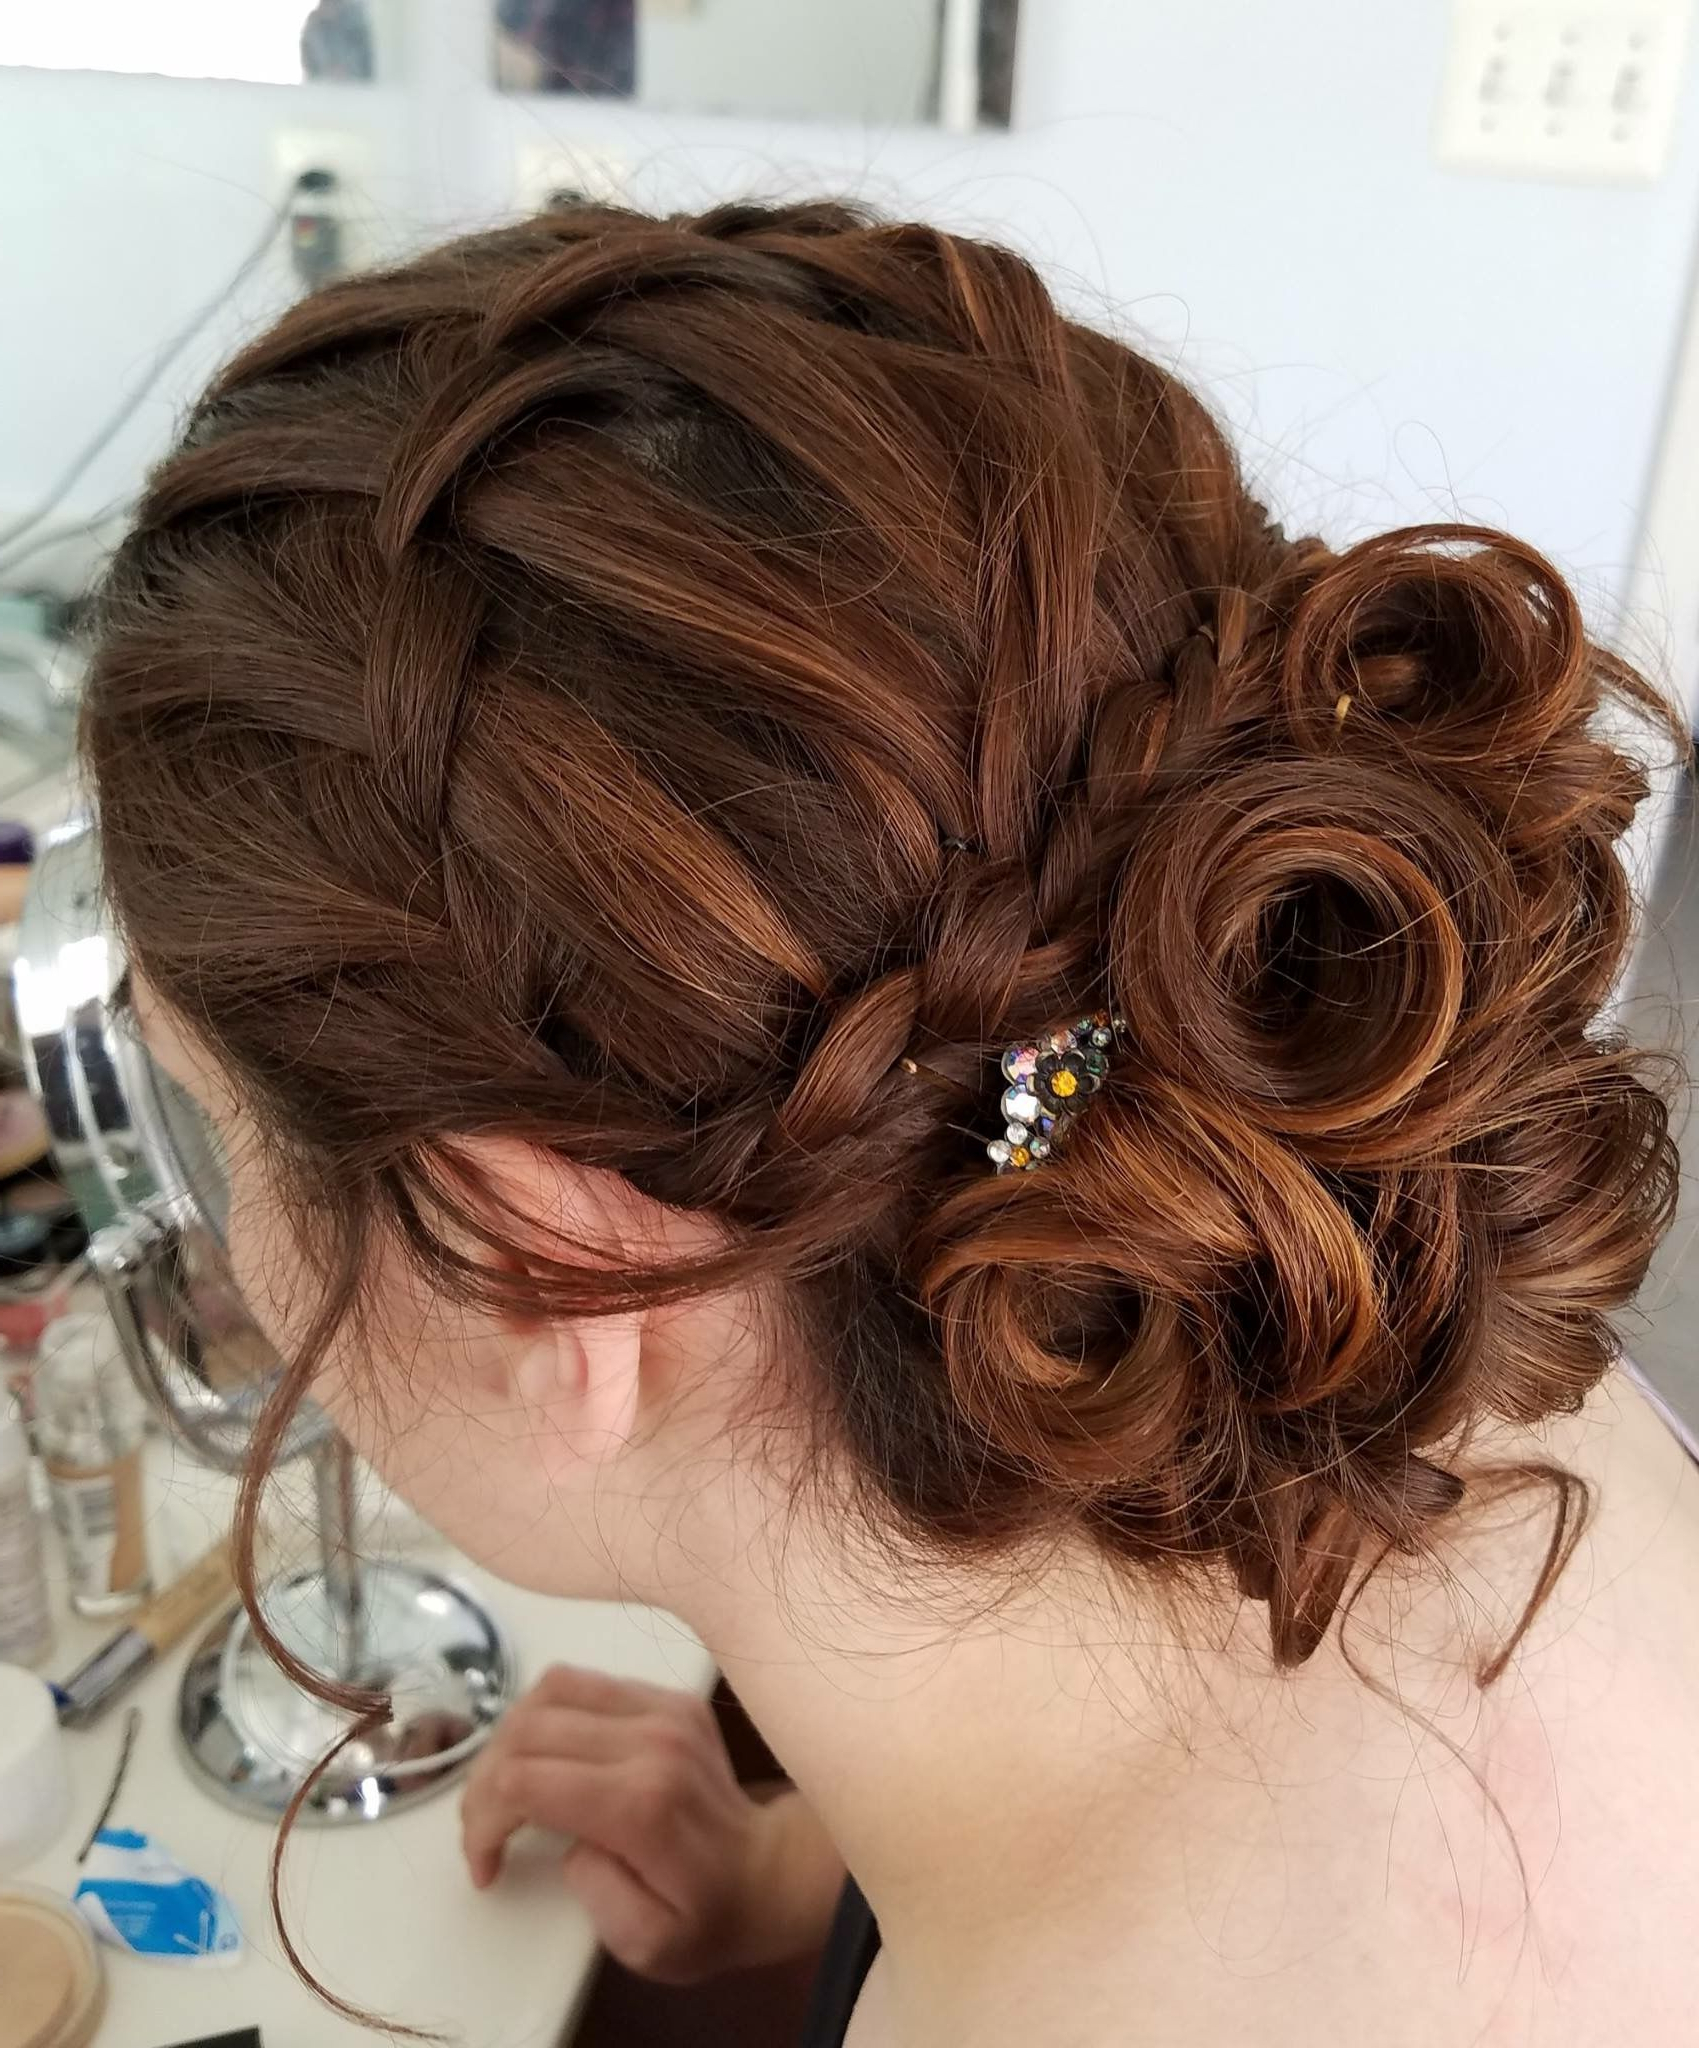 Hairstyles : Prom Hair Low Bun Updo Pinterest And With Hairstyles In Most Up To Date Volumized Low Chignon Prom Hairstyles (View 8 of 20)